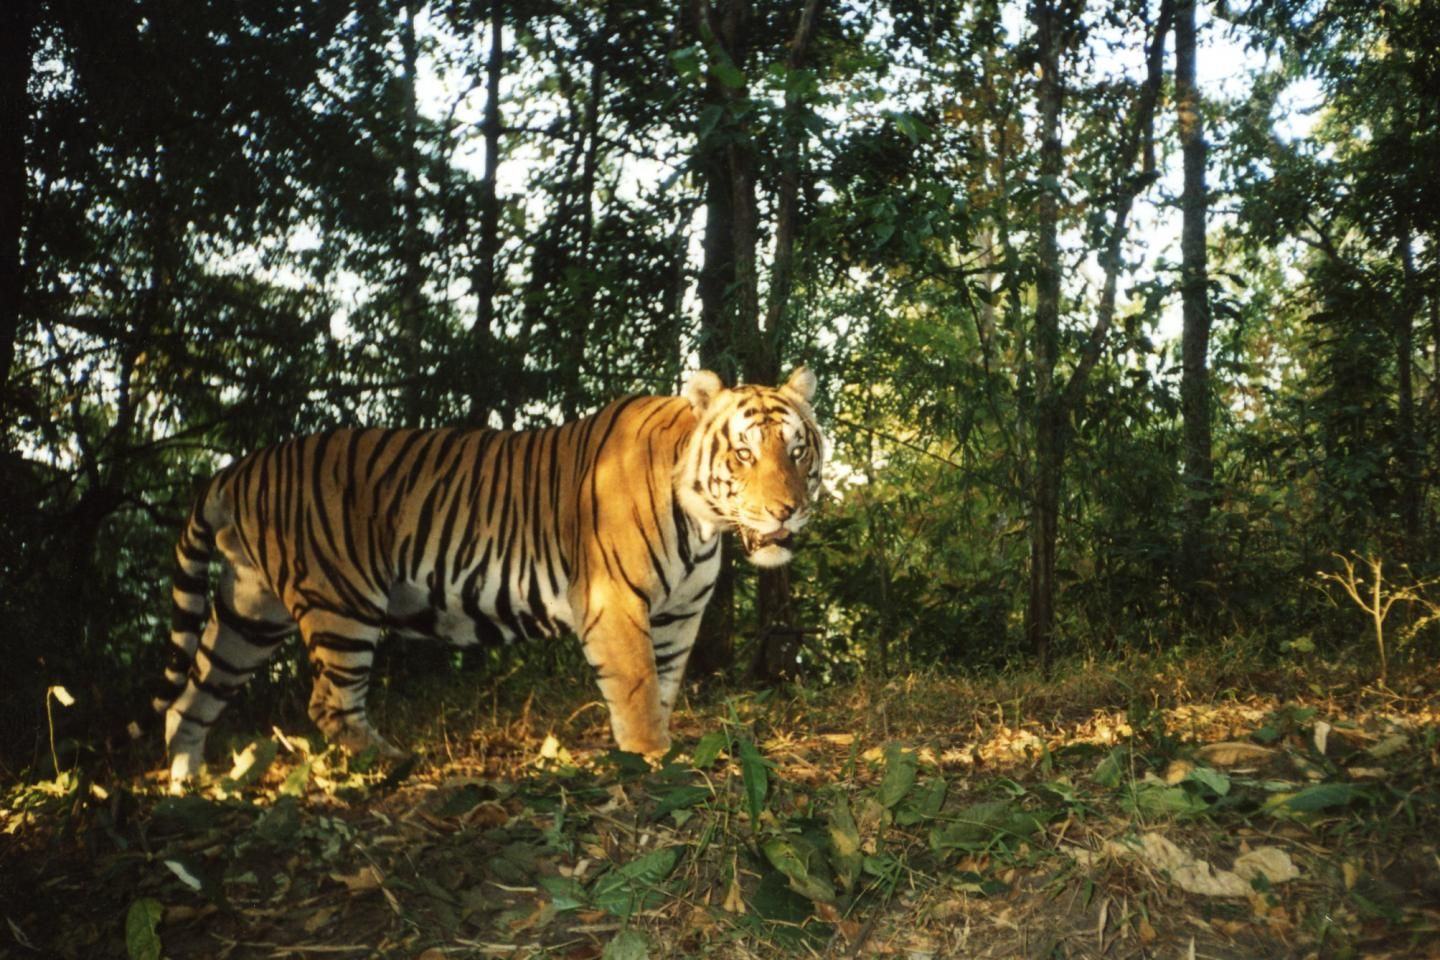 Endangered Tiger Are Recovering In At Least One Place in ...